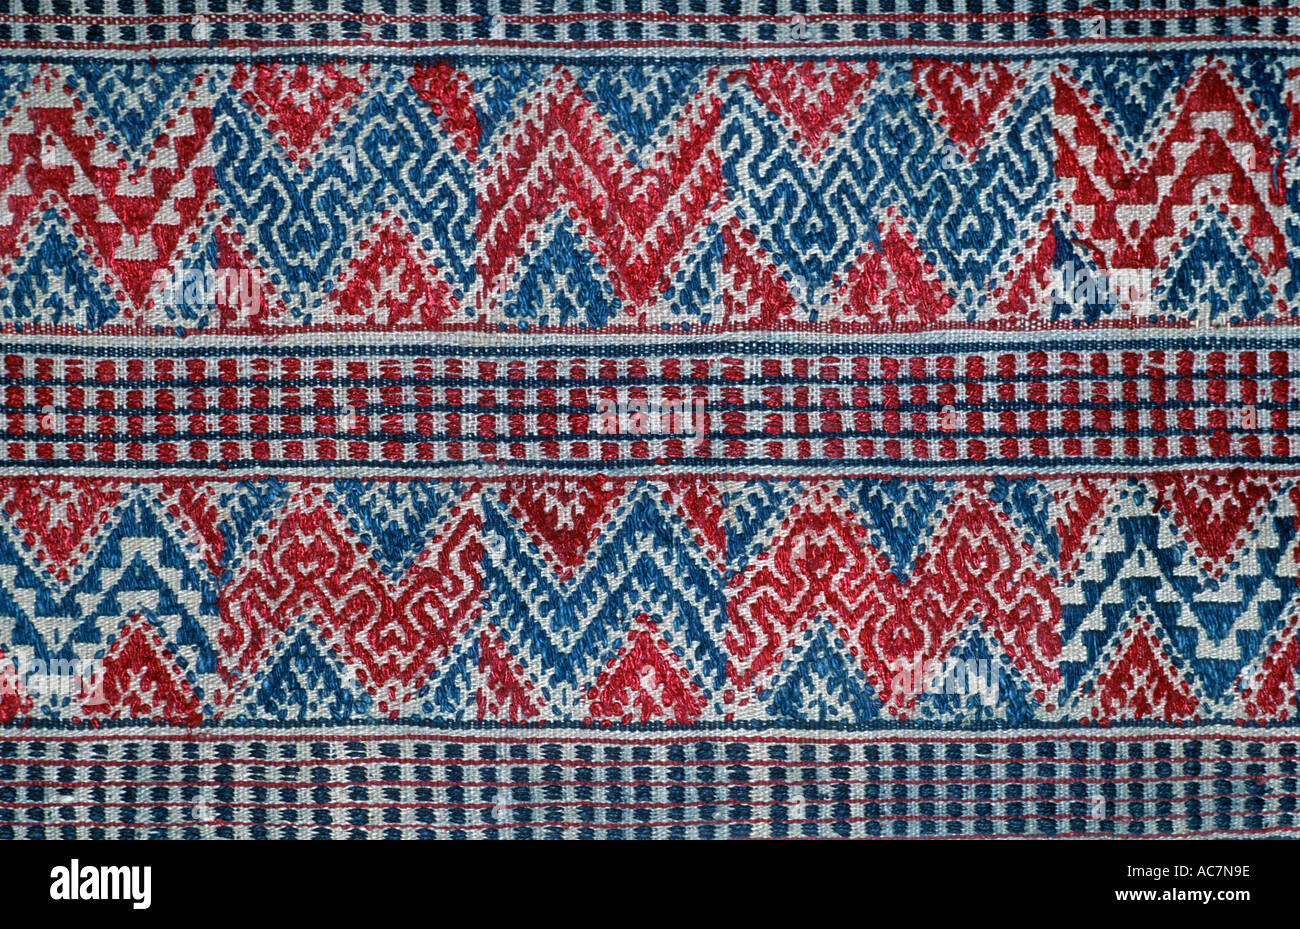 Bhutanese brocaded fabric with supplementary weft brocading Woven on a hip strap loom Bhutan - Stock Image